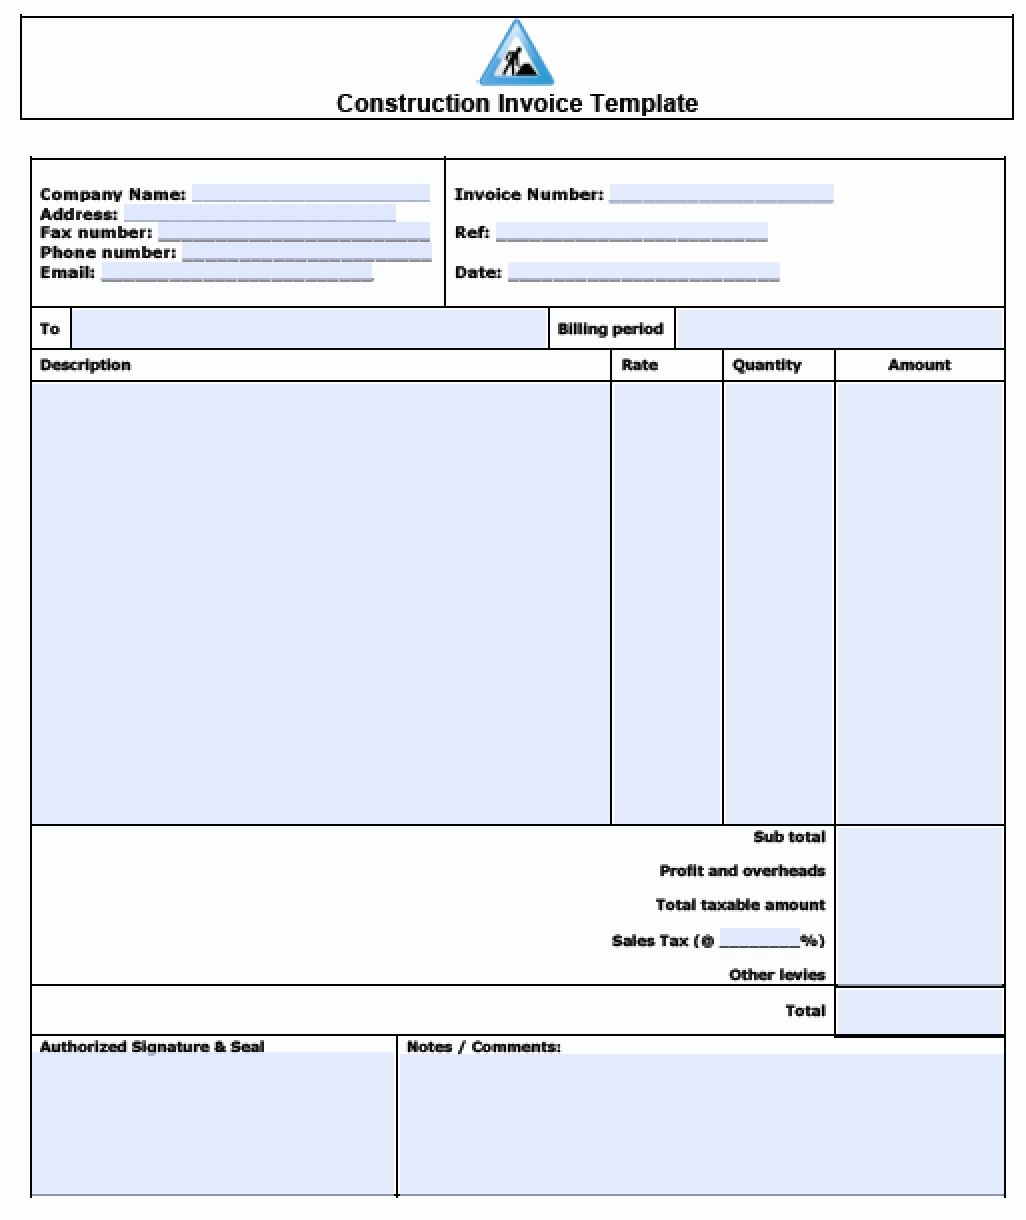 Construction Invoice Template Excel